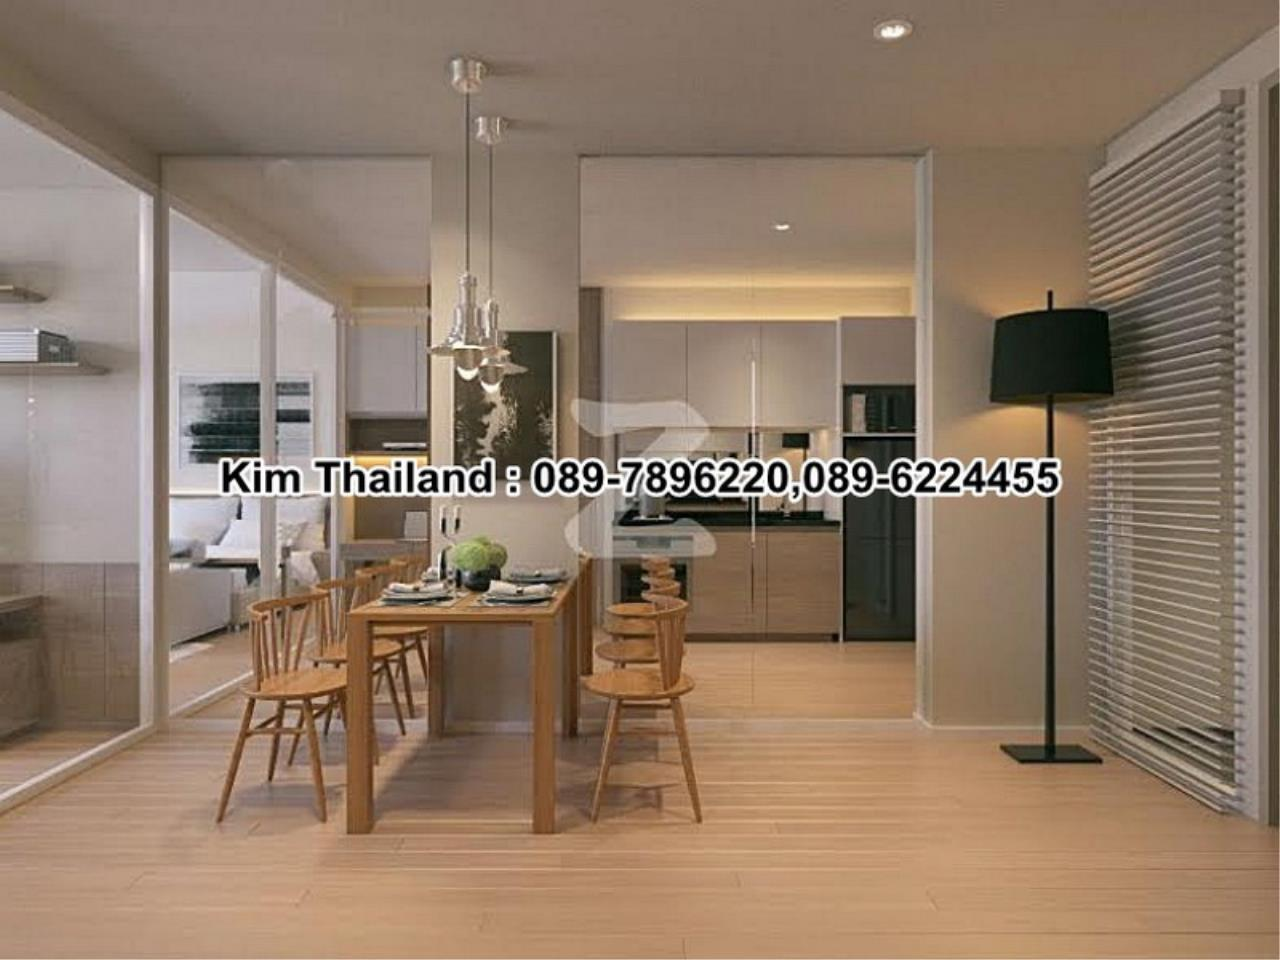 BKKcondorental Agency's For sale, Condo Noble Ploenchit , 49 s.qm. 1 bathroom. Price 14.5 Million baht. 7